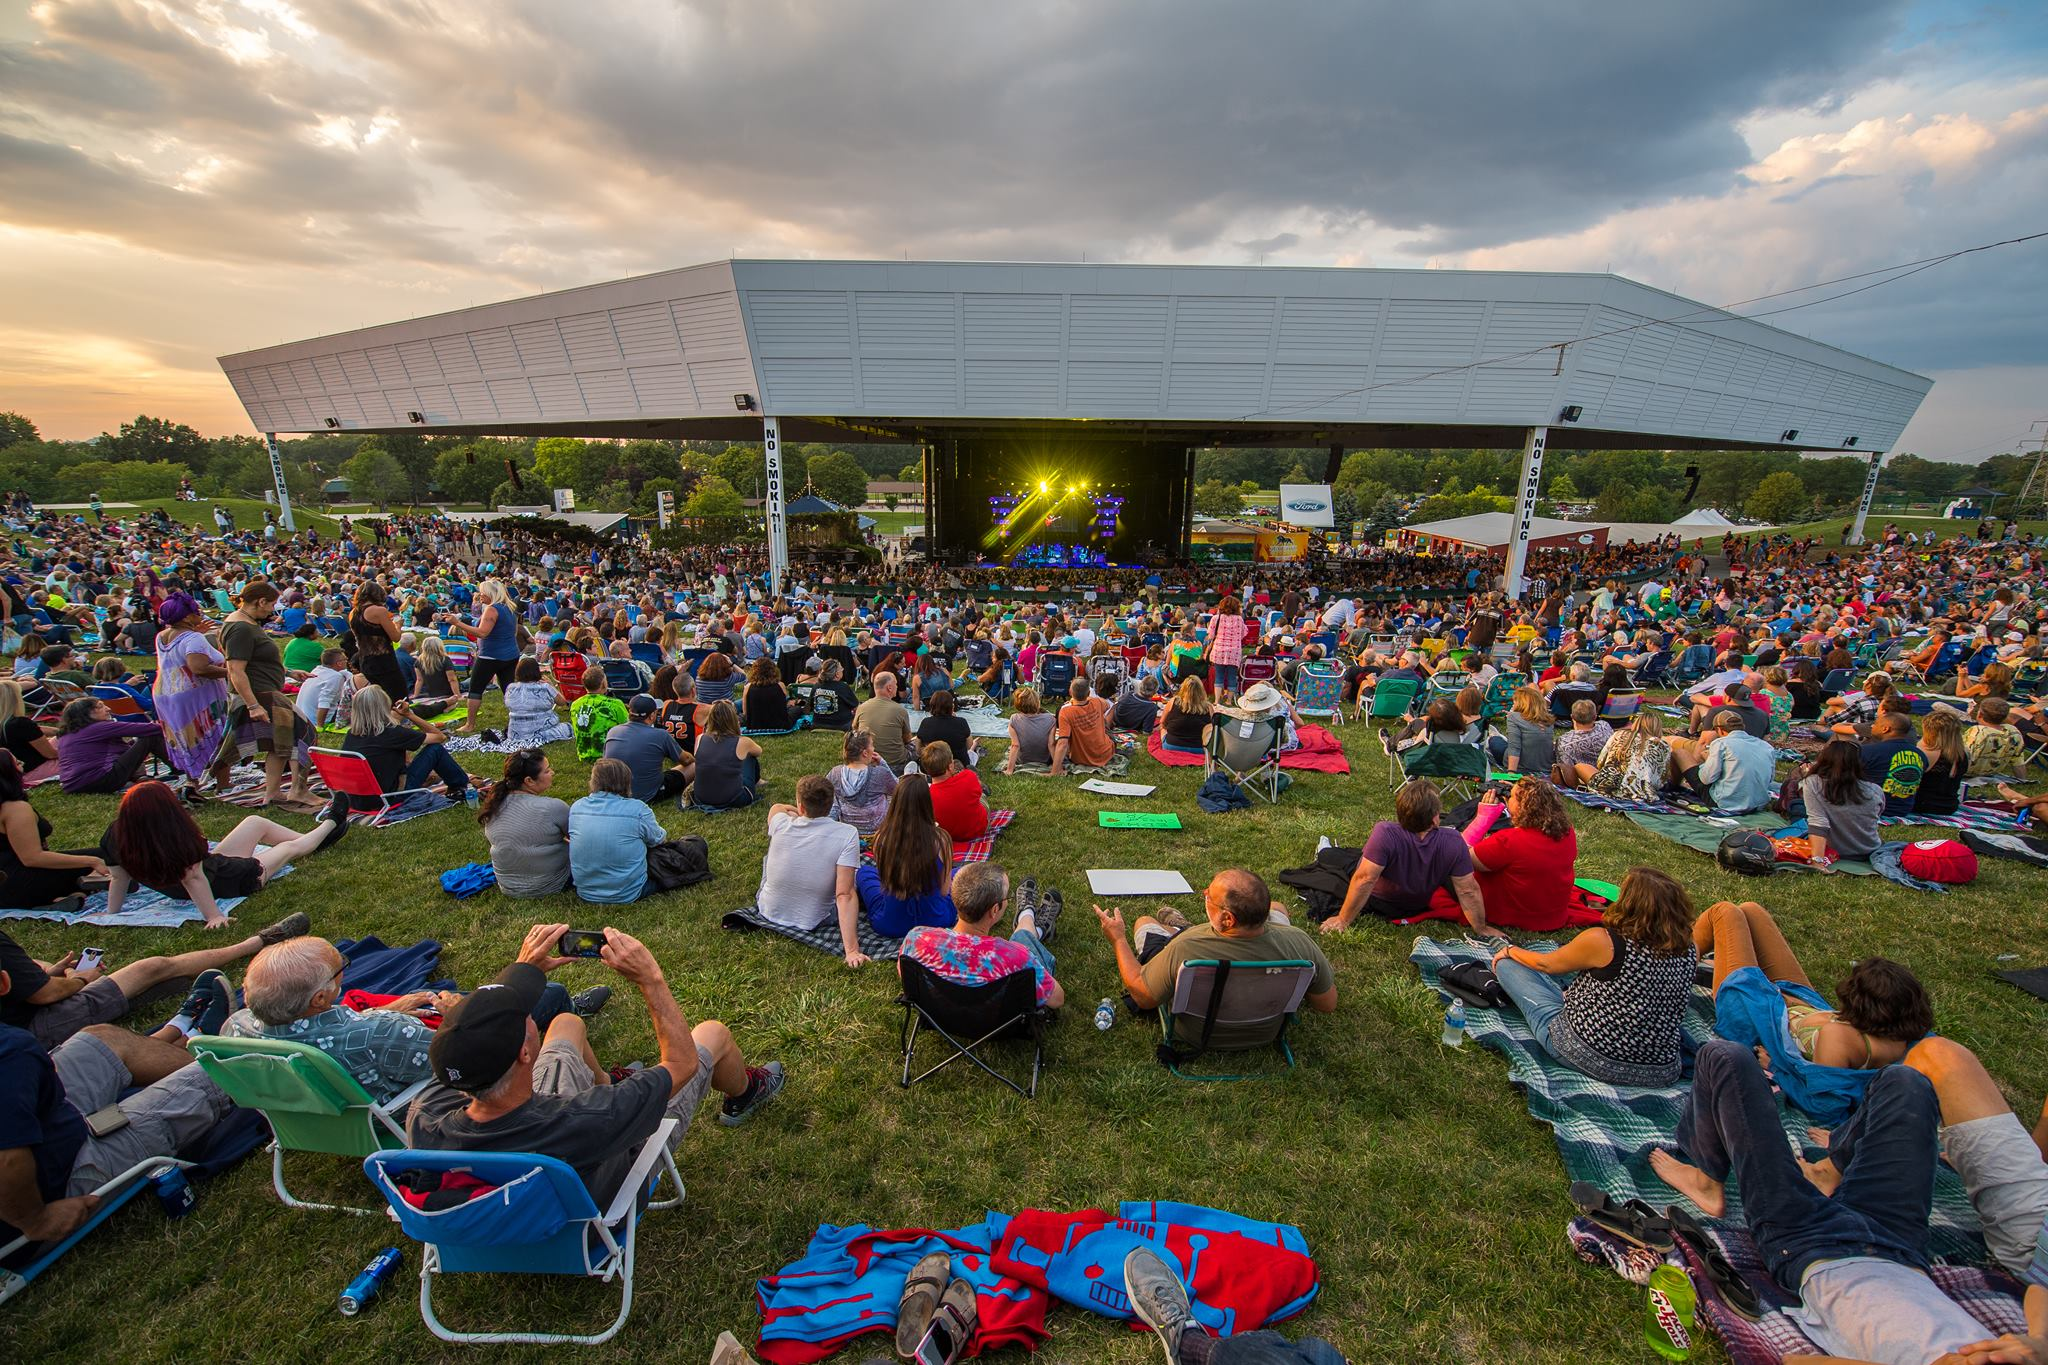 Michigan Lottery Amphitheatre at Freedom Hill 2018 Schedule Is Here